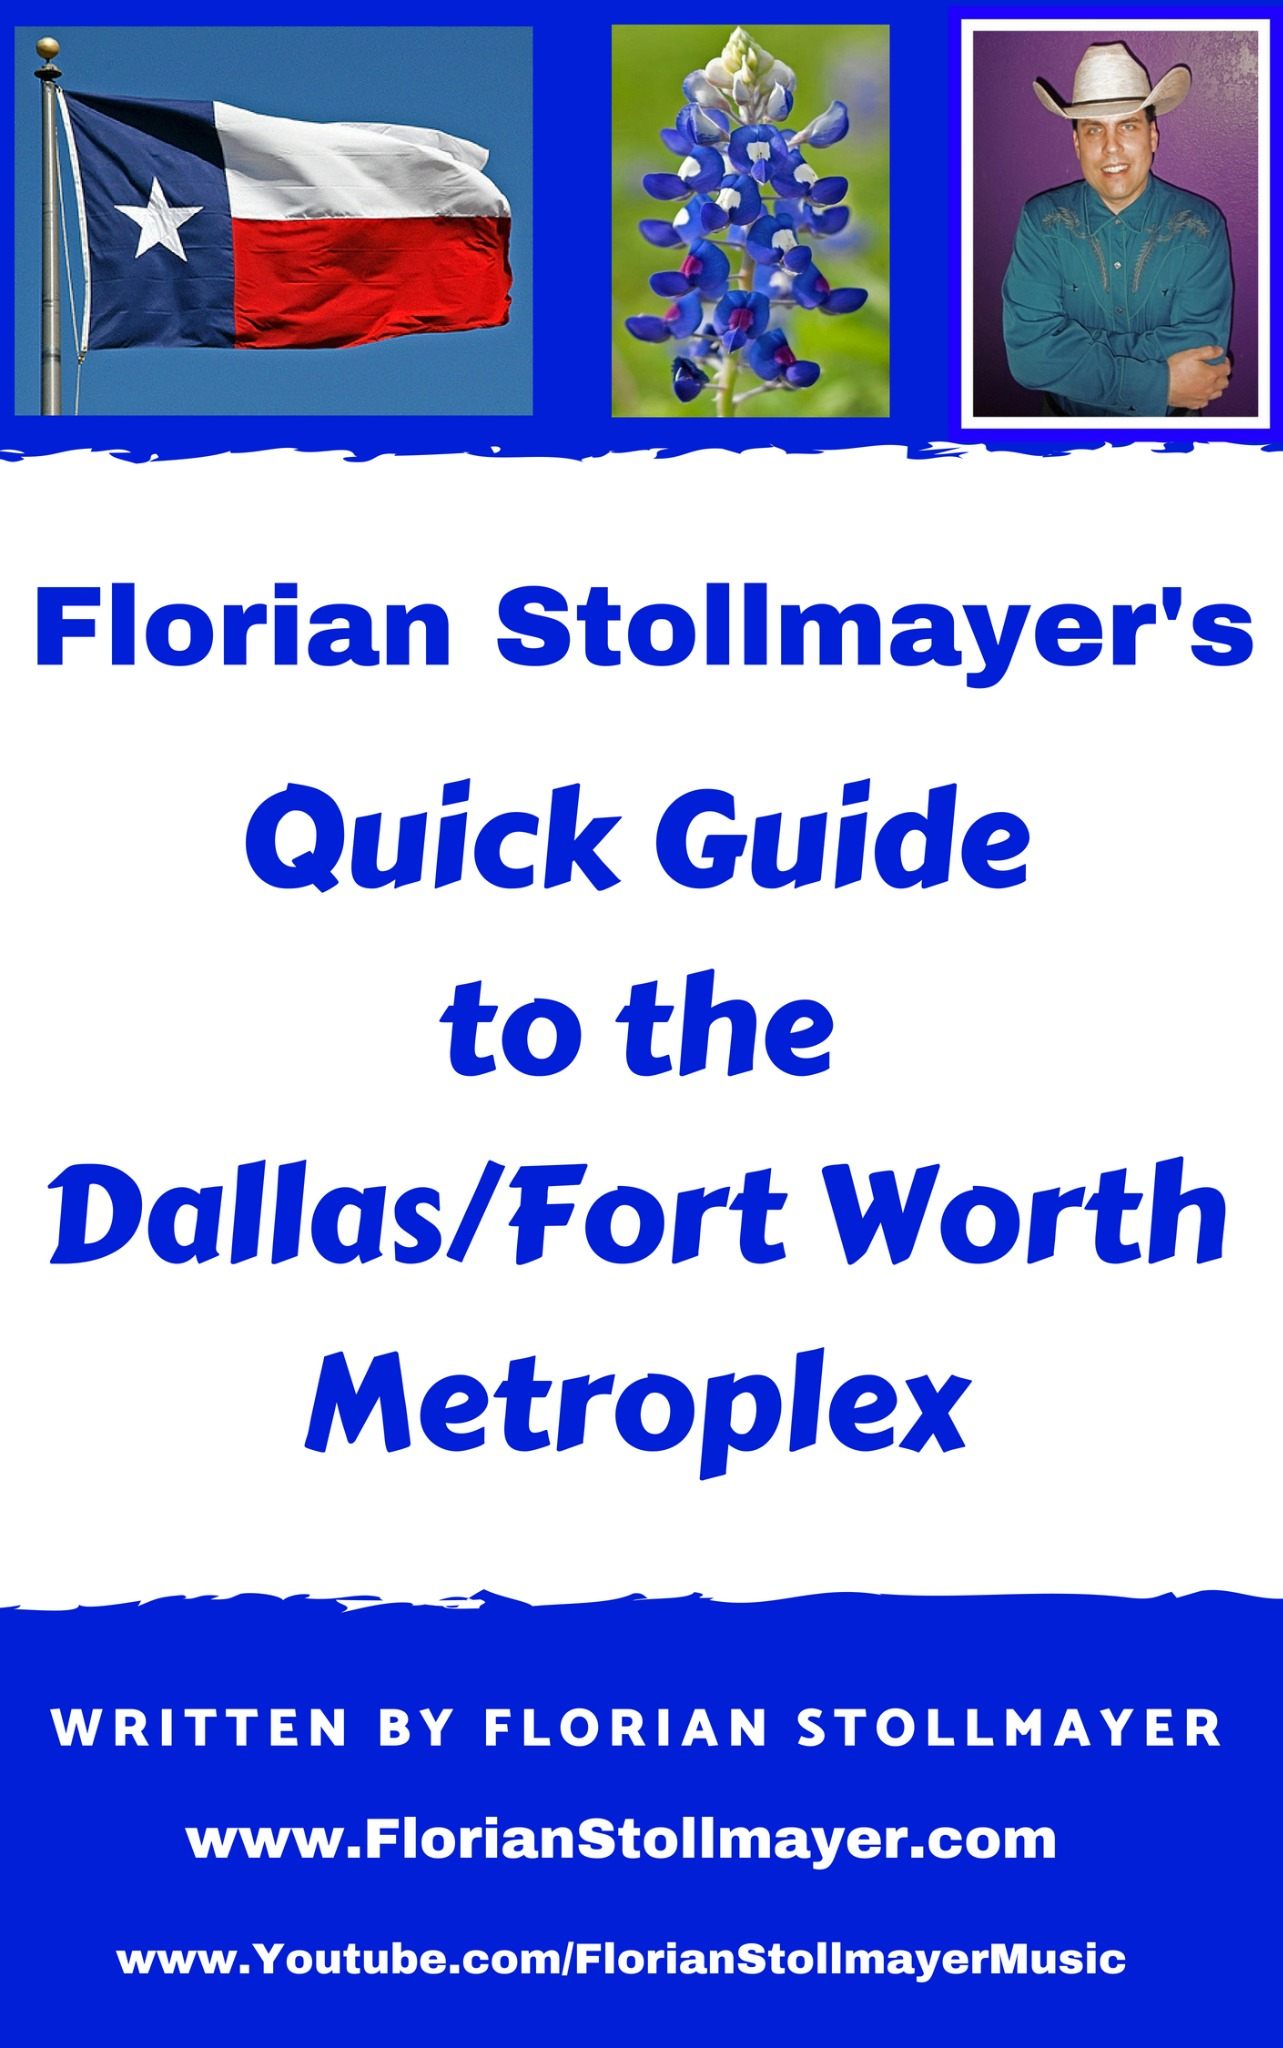 Florian Stollmayer's Quick Guide to the Dallas/Ft. Worth Metroplex